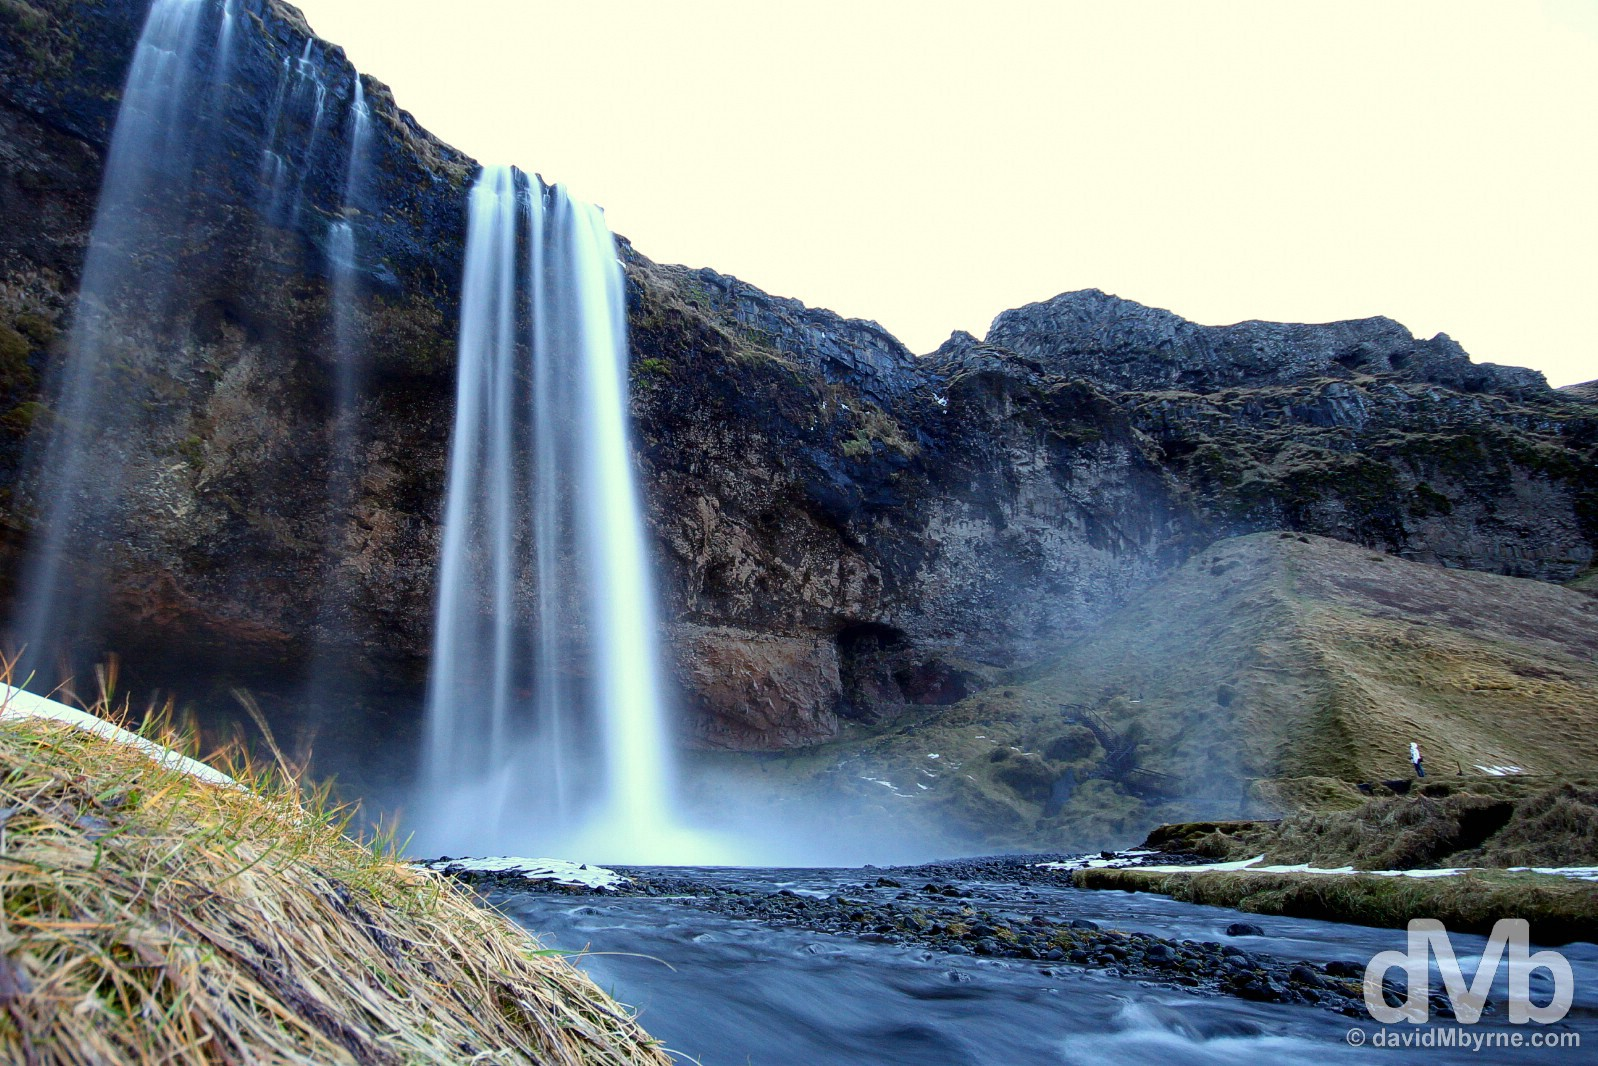 Seljalandsfoss Waterfall, just off Route 1, on the road from Reykjavik to Vik, southern Iceland. December 4, 2012.